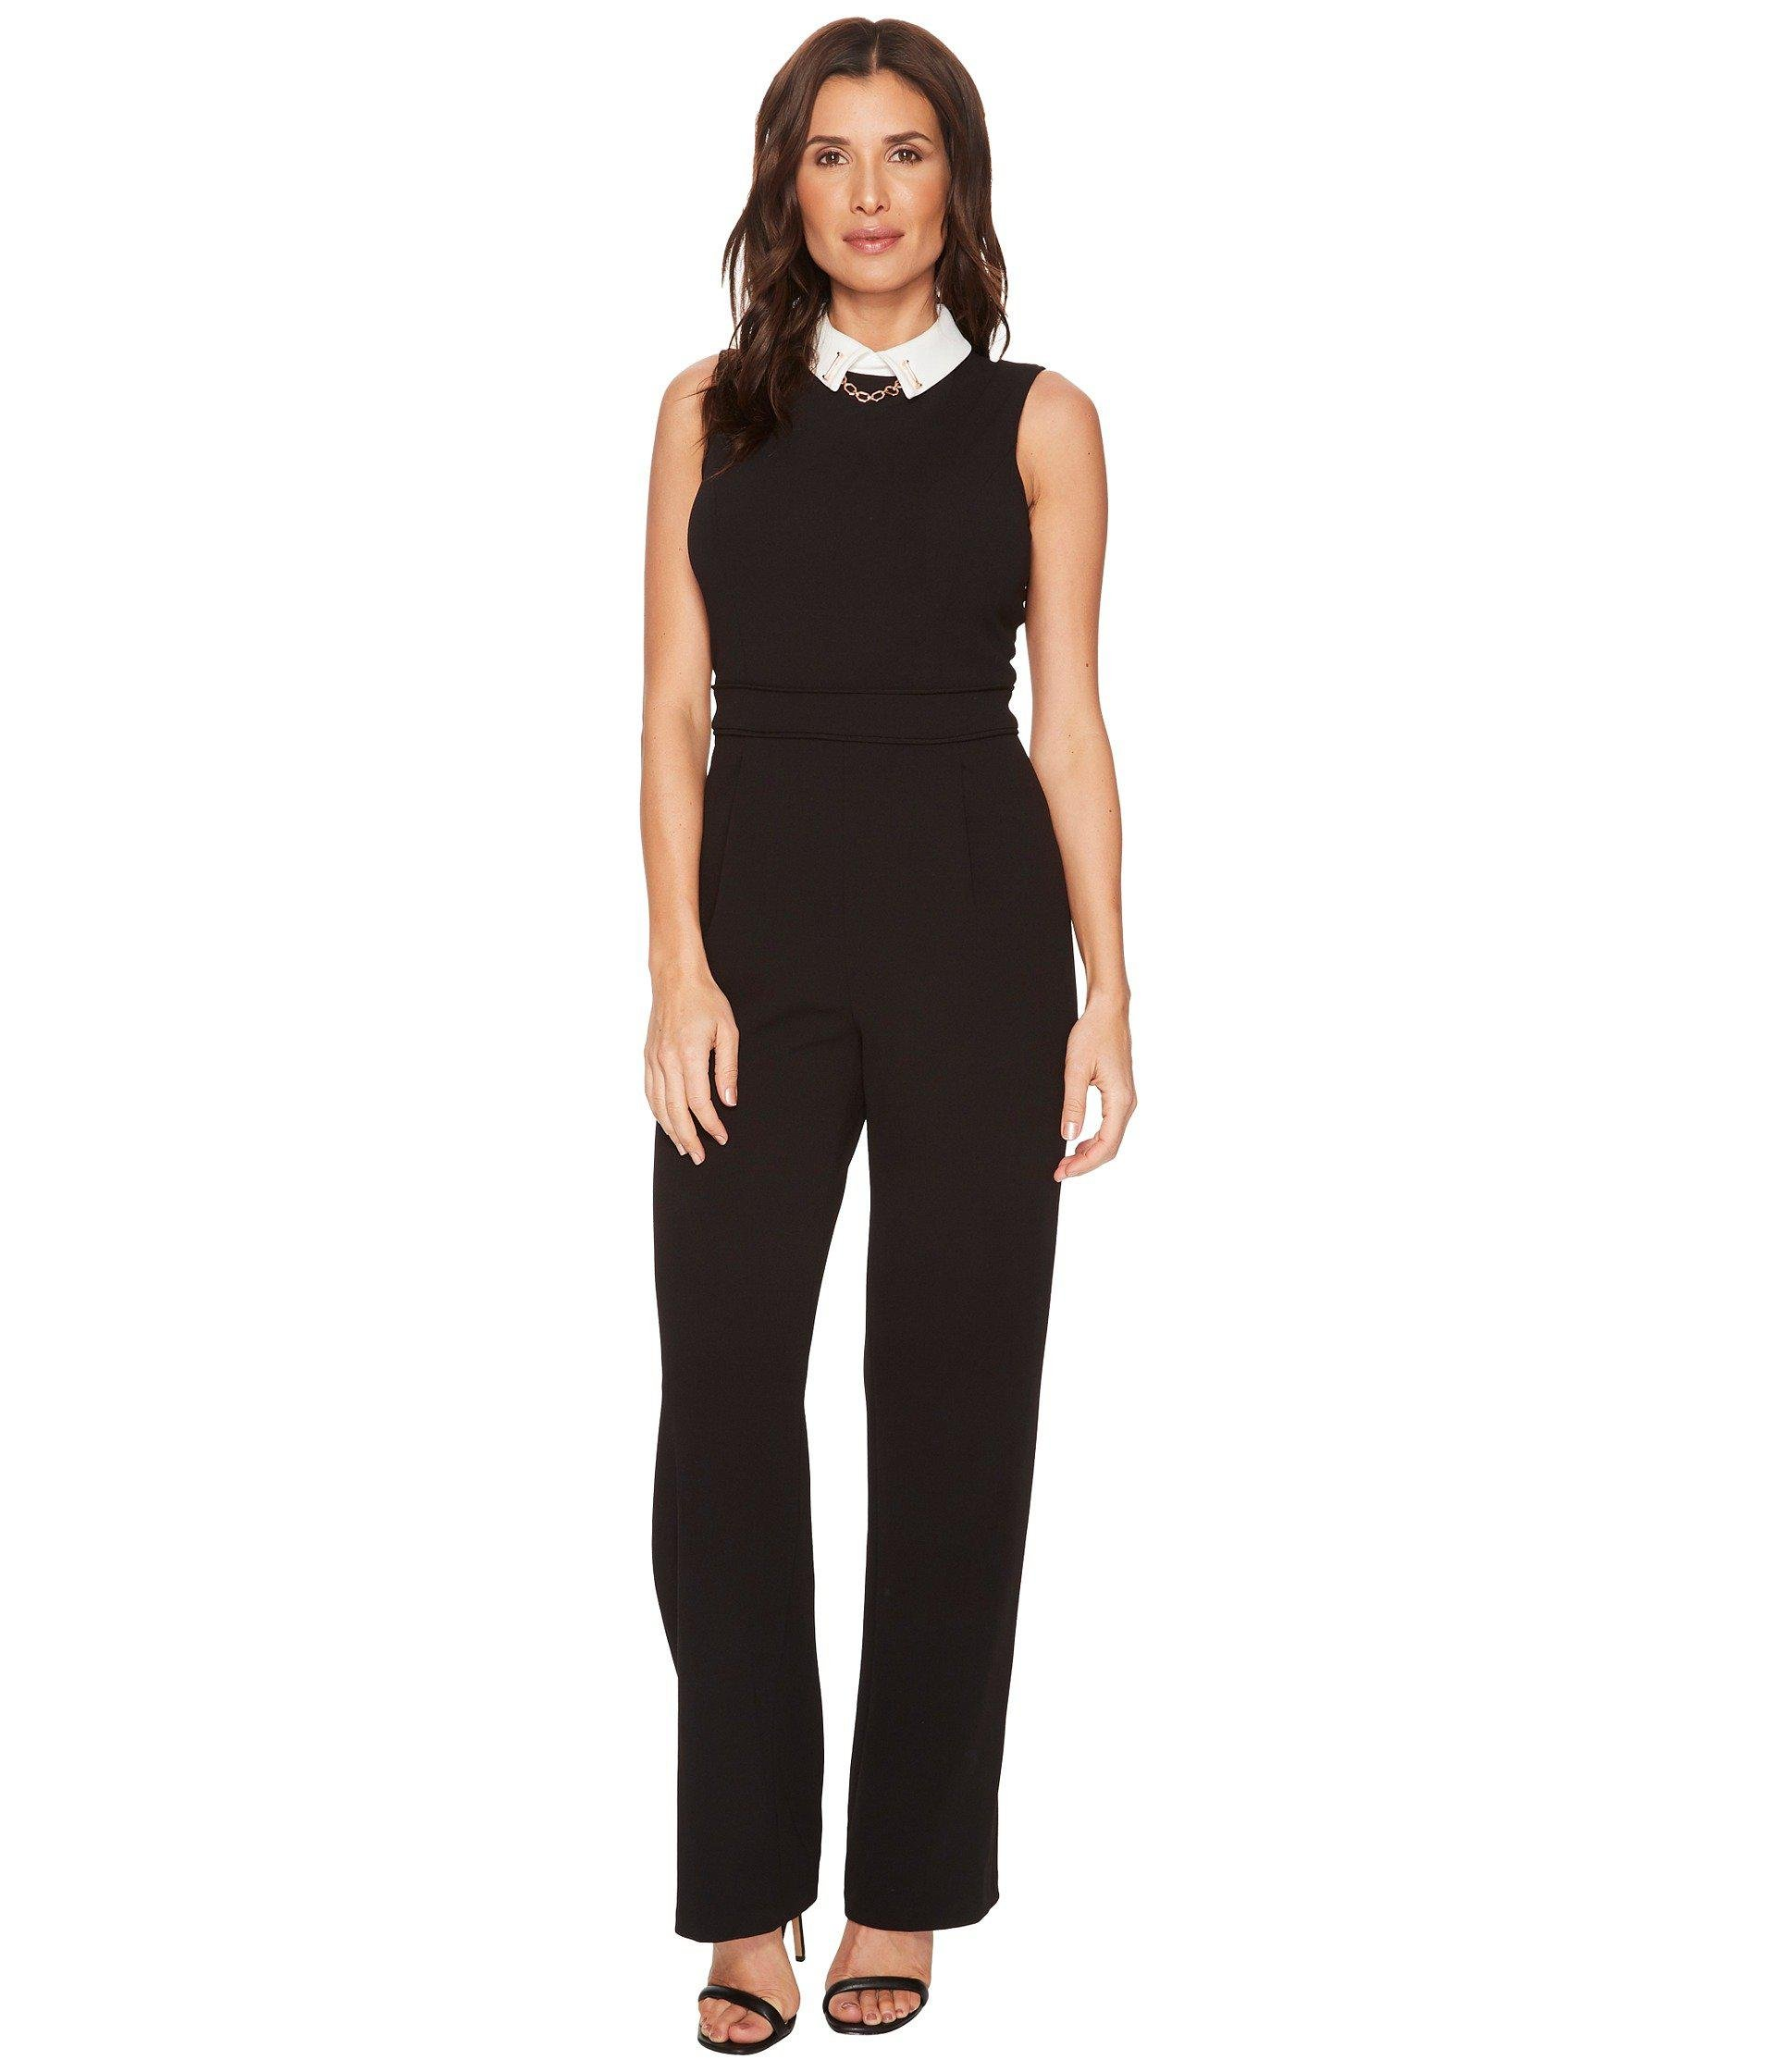 fa928a310e4 Lyst - Ivanka Trump Scuba Crepe White Collar Jumpsuit in Black ...